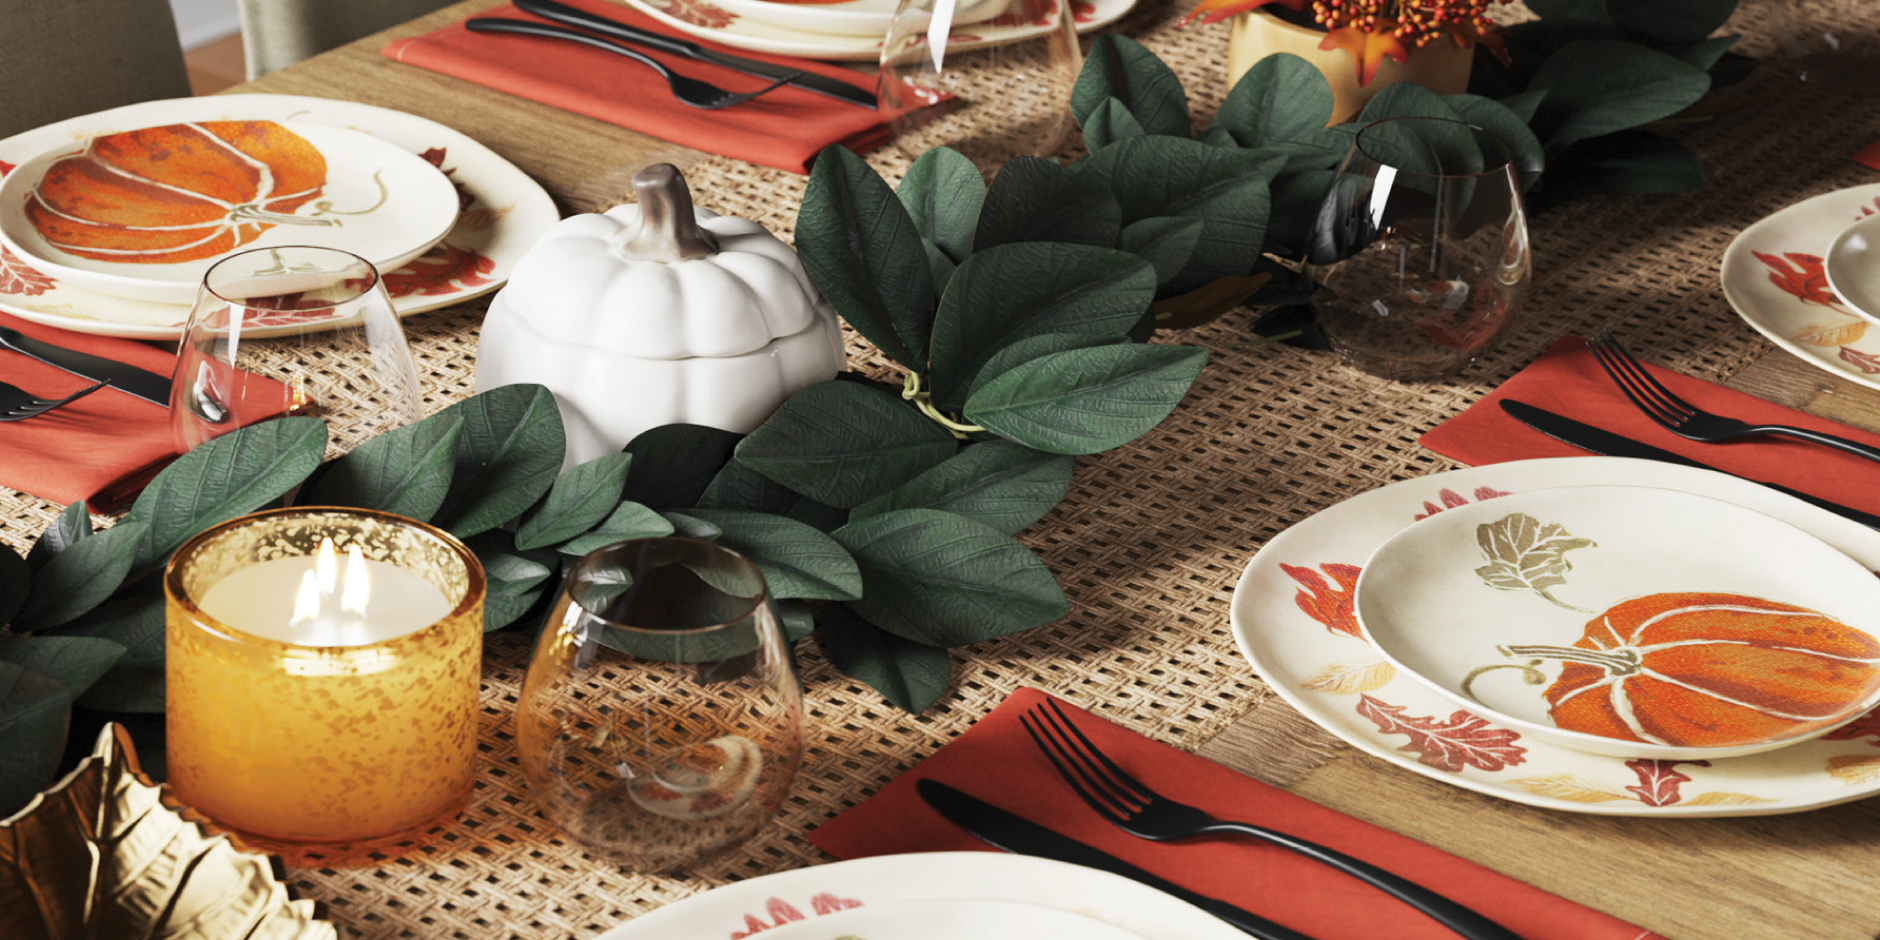 A tablescape featuring candles, pumpkins, greenery and more